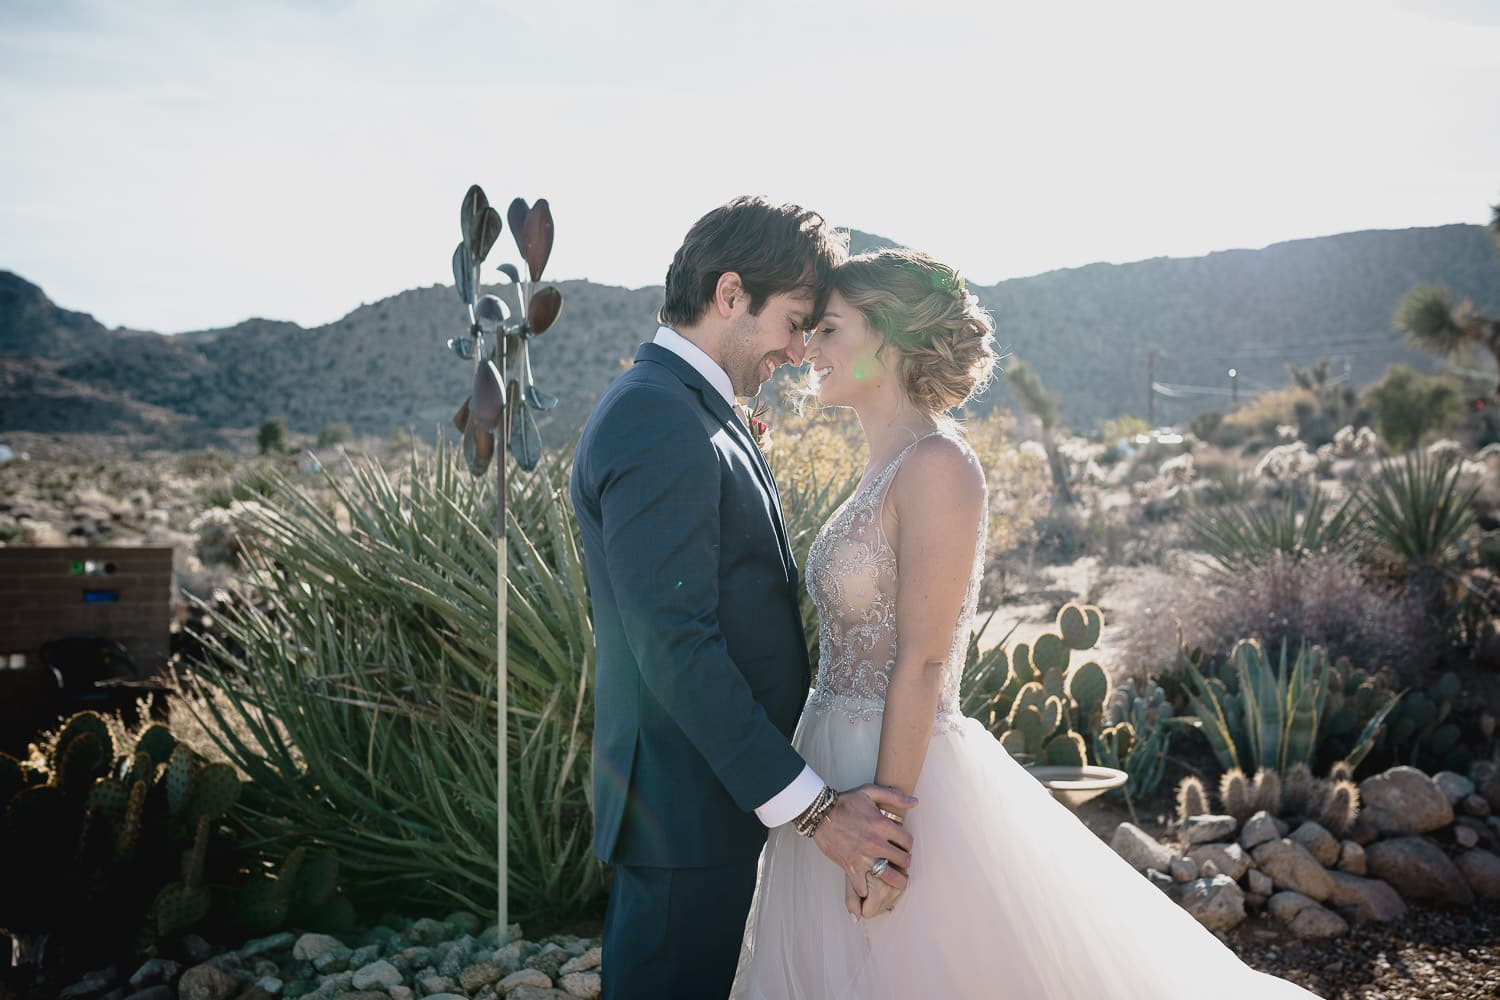 Melanie + Anthony Joshua Tree Intimate Elopement 11